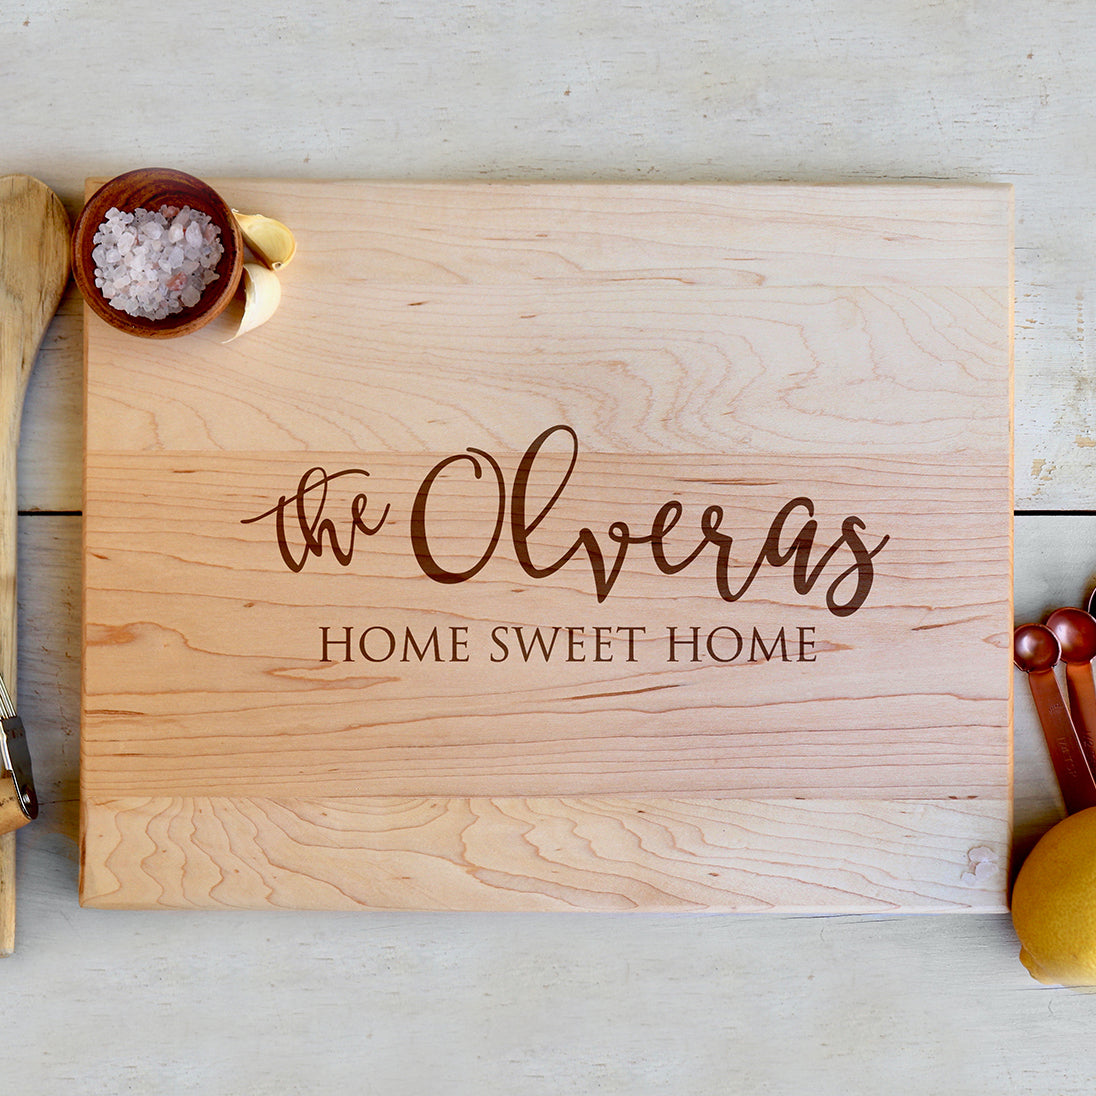 Customized Cutting Board Personalized Family Cutting Board The Olver Stamp Out